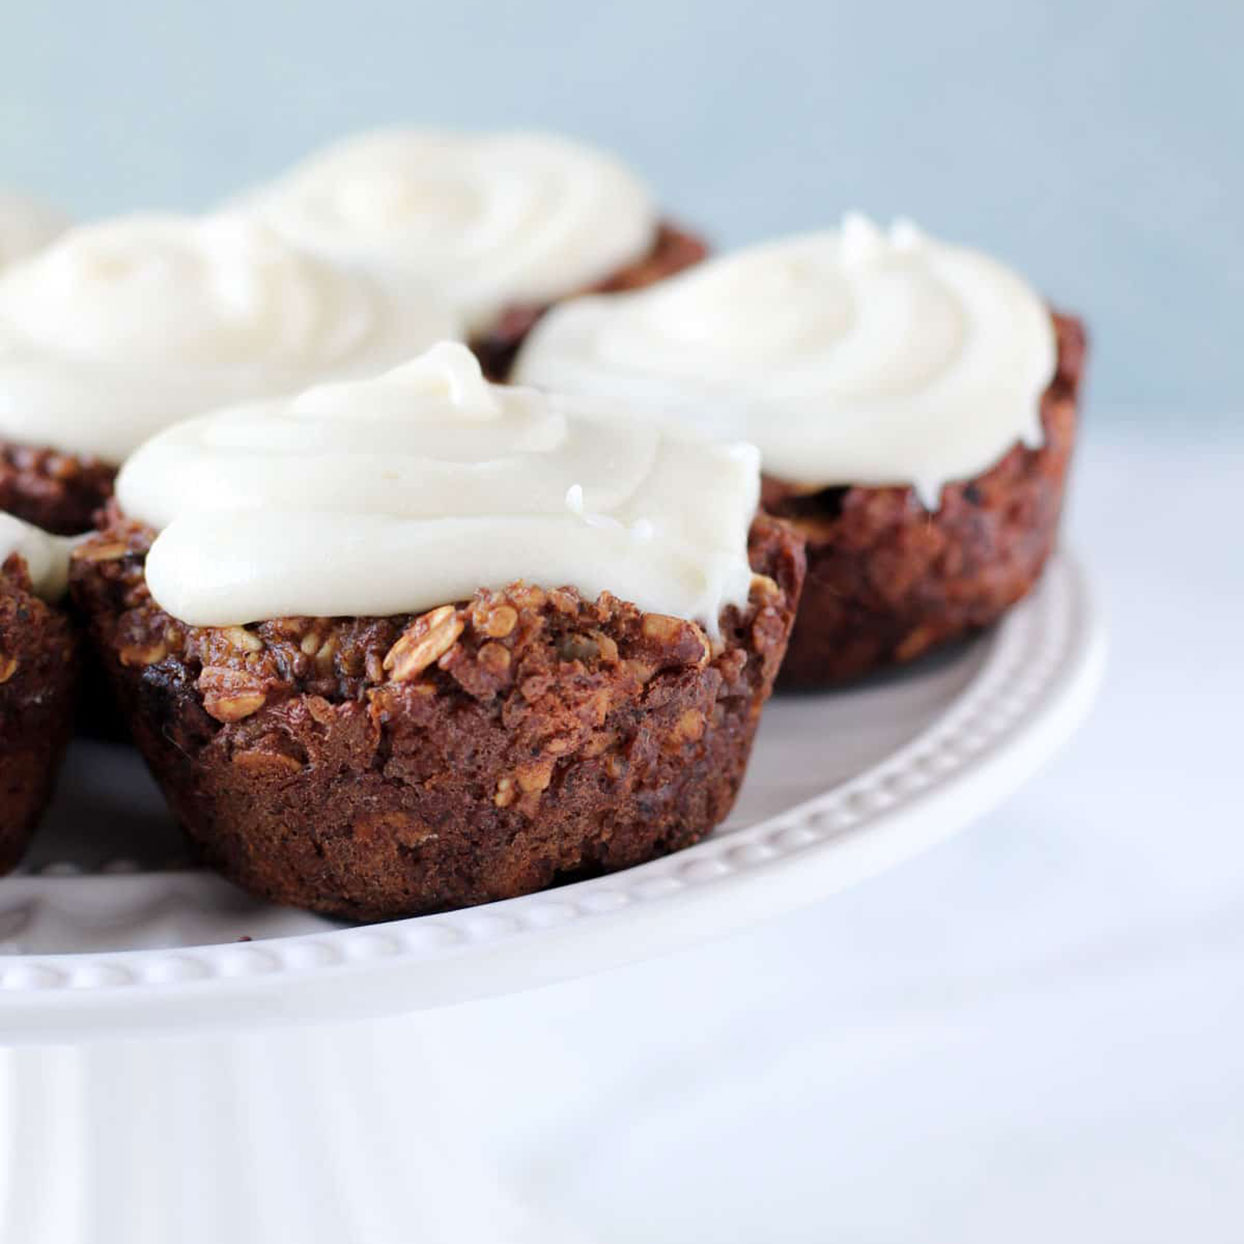 Between the walnuts, raisins, cinnamon, nutmeg, and cream cheese icing, you won't even notice that these carrot cake muffins are a protein-packed healthy quinoa recipe. (See also:10 Guilt-Free Muffin Recipes for Fall.)Get the recipe:Carrot Cake Quinoa Muffins with Frosting